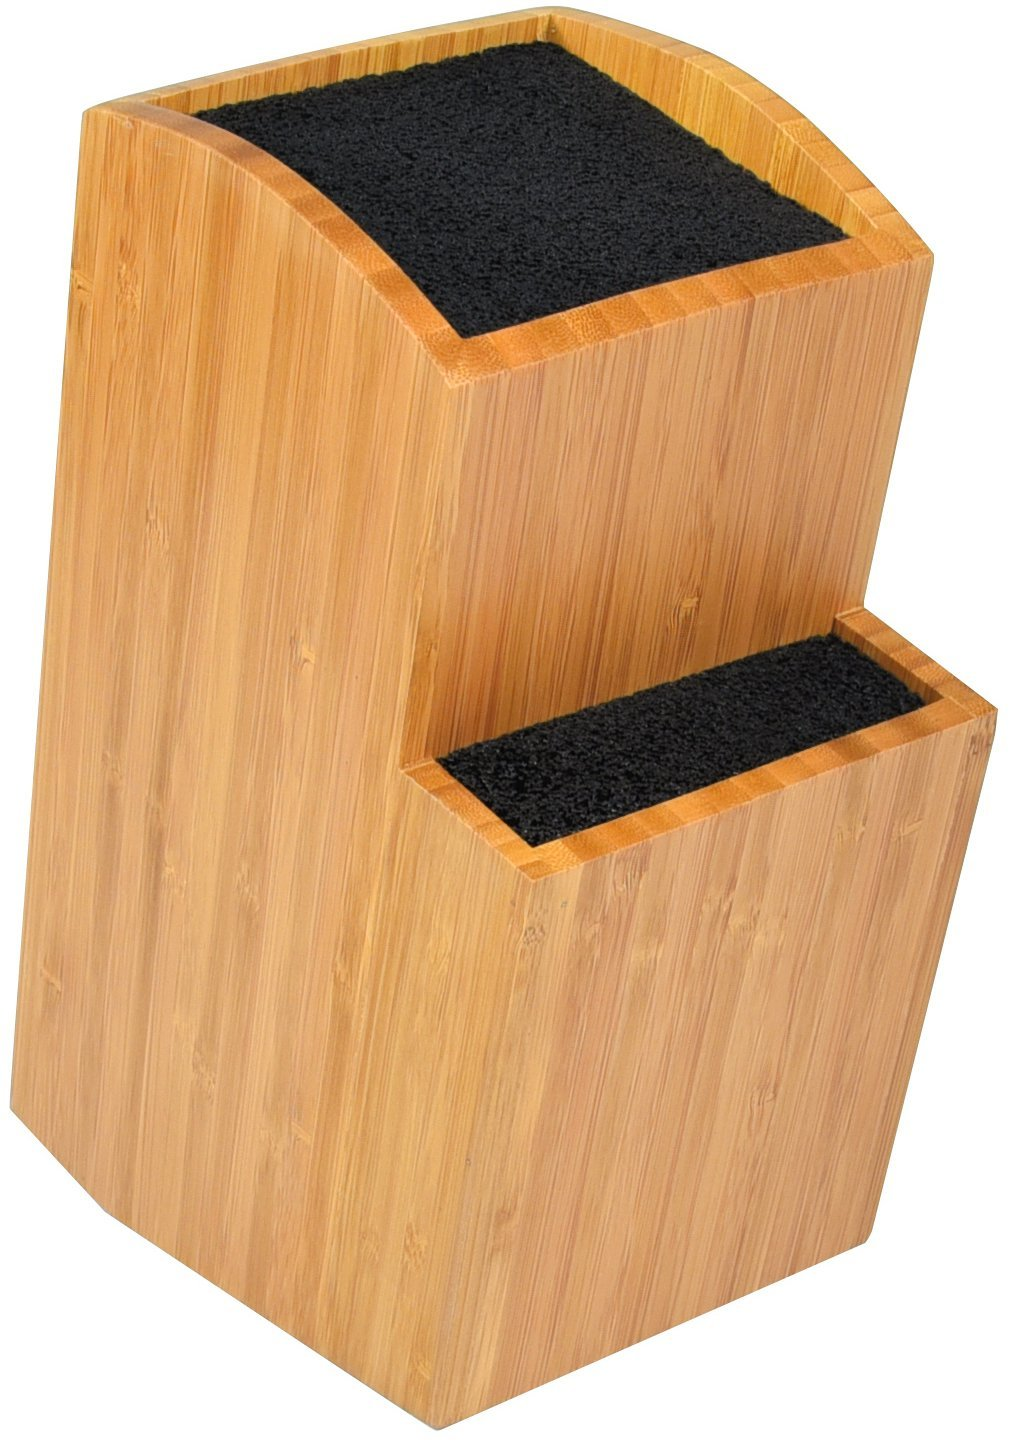 Bamboo Universal Knife Block - Extra Large Two-tiered Slotless Wooden Knife Stand, Organizer & Holder - Convenient Safe Storage for Large and Small Knives & Utensils - Easy to Clean Removable Bristles